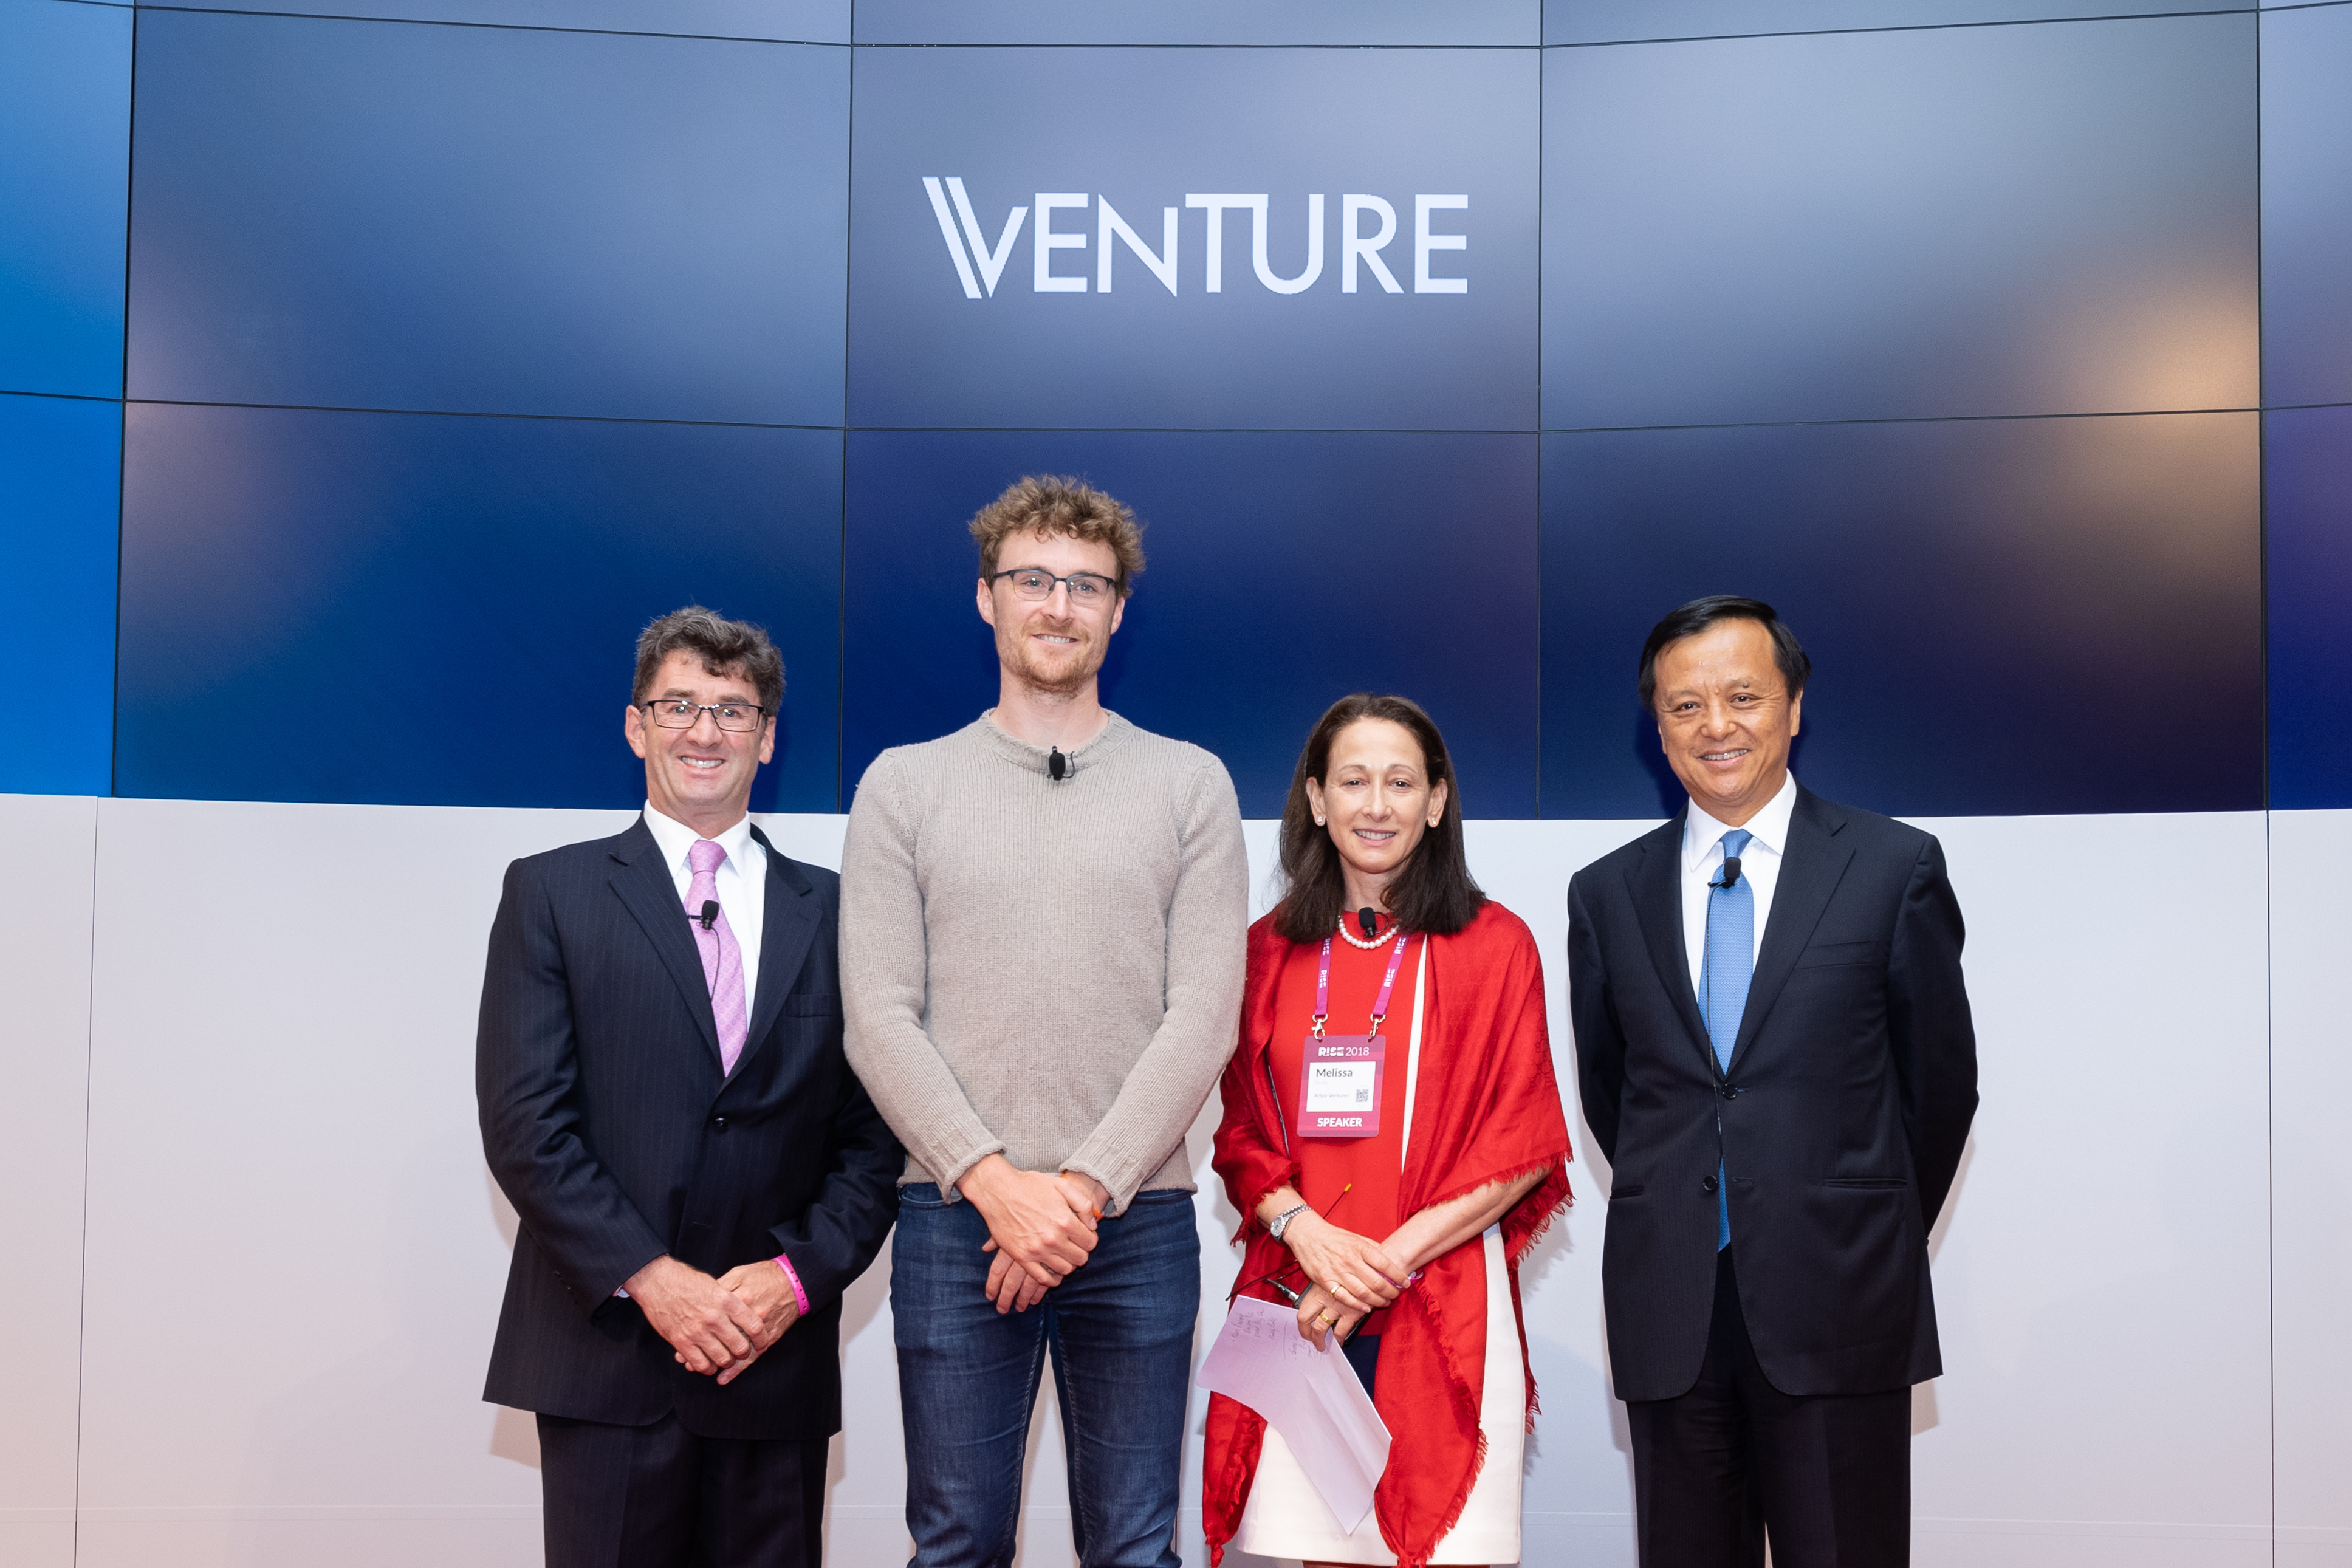 "HKEX, the Hong Kong Venture Capital and Private Equity Association (HKVCA) and Web Summit (RISE) jointly hosted a conference on venture capital investment in Hong Kong titled ""Venture"" on 9 July 2018.  (From left) Eric Mason, Chairman, HKVCA; Paddy Cosgrave, CEO, Web Summit, Melissa Guzy, Executive Director, HKVCA; and HKEX Chief Executive Charles Li welcome the guests of the event."